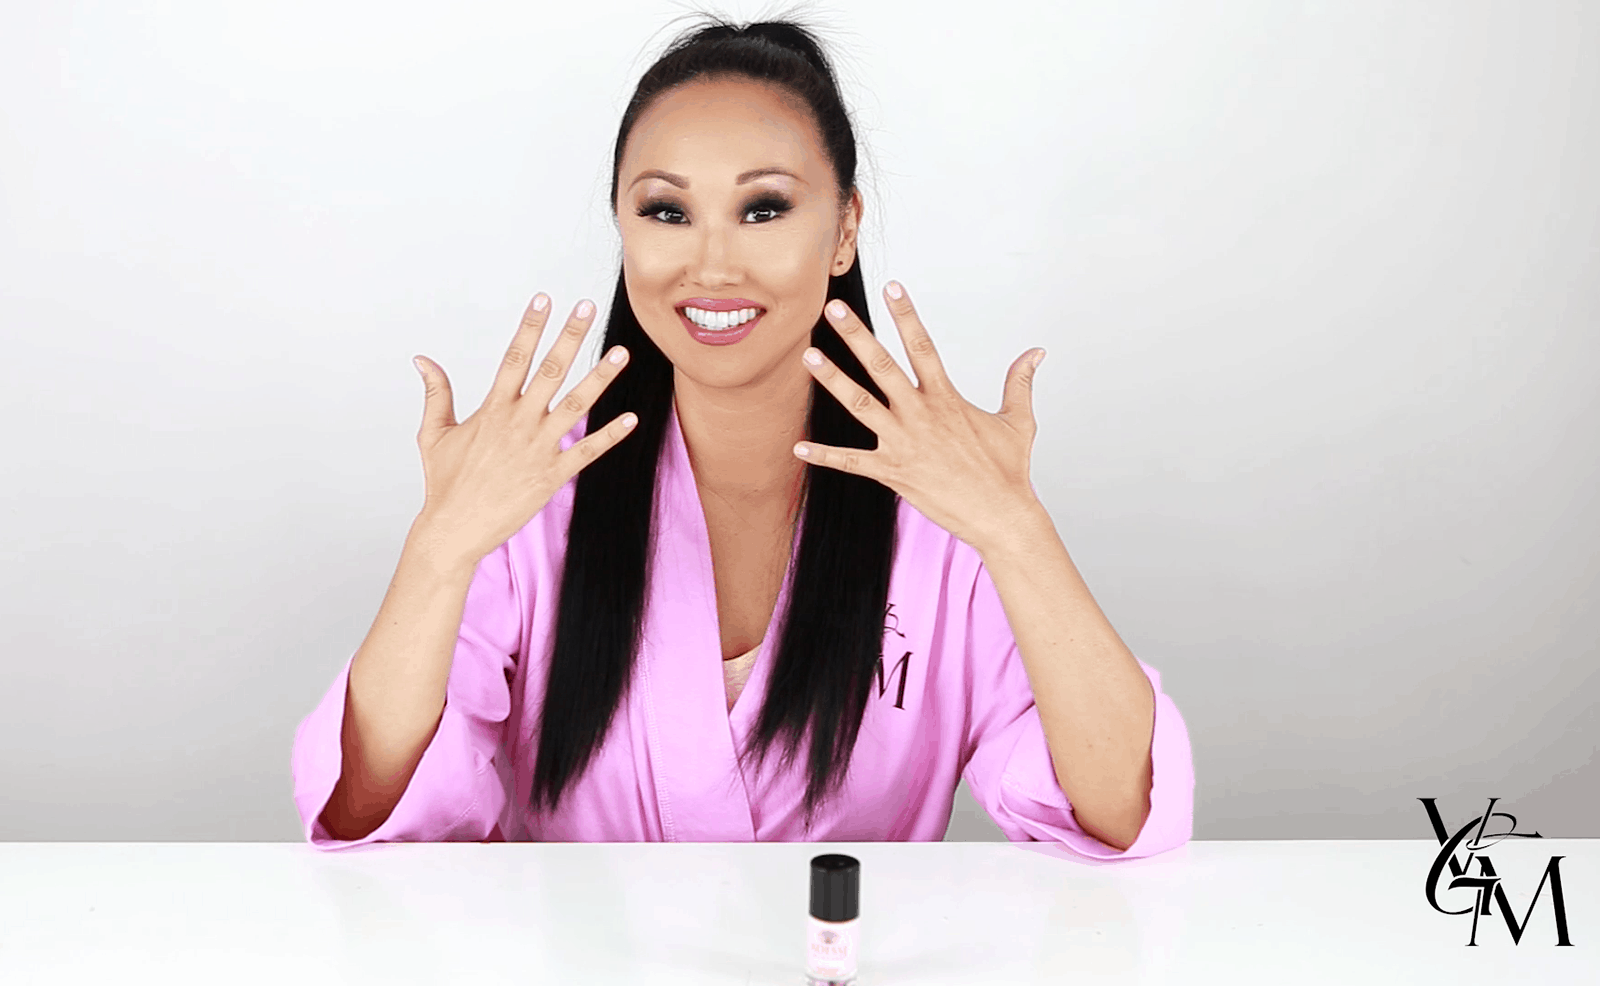 candace_kita_nail_Color_for_Audition_actress_tip